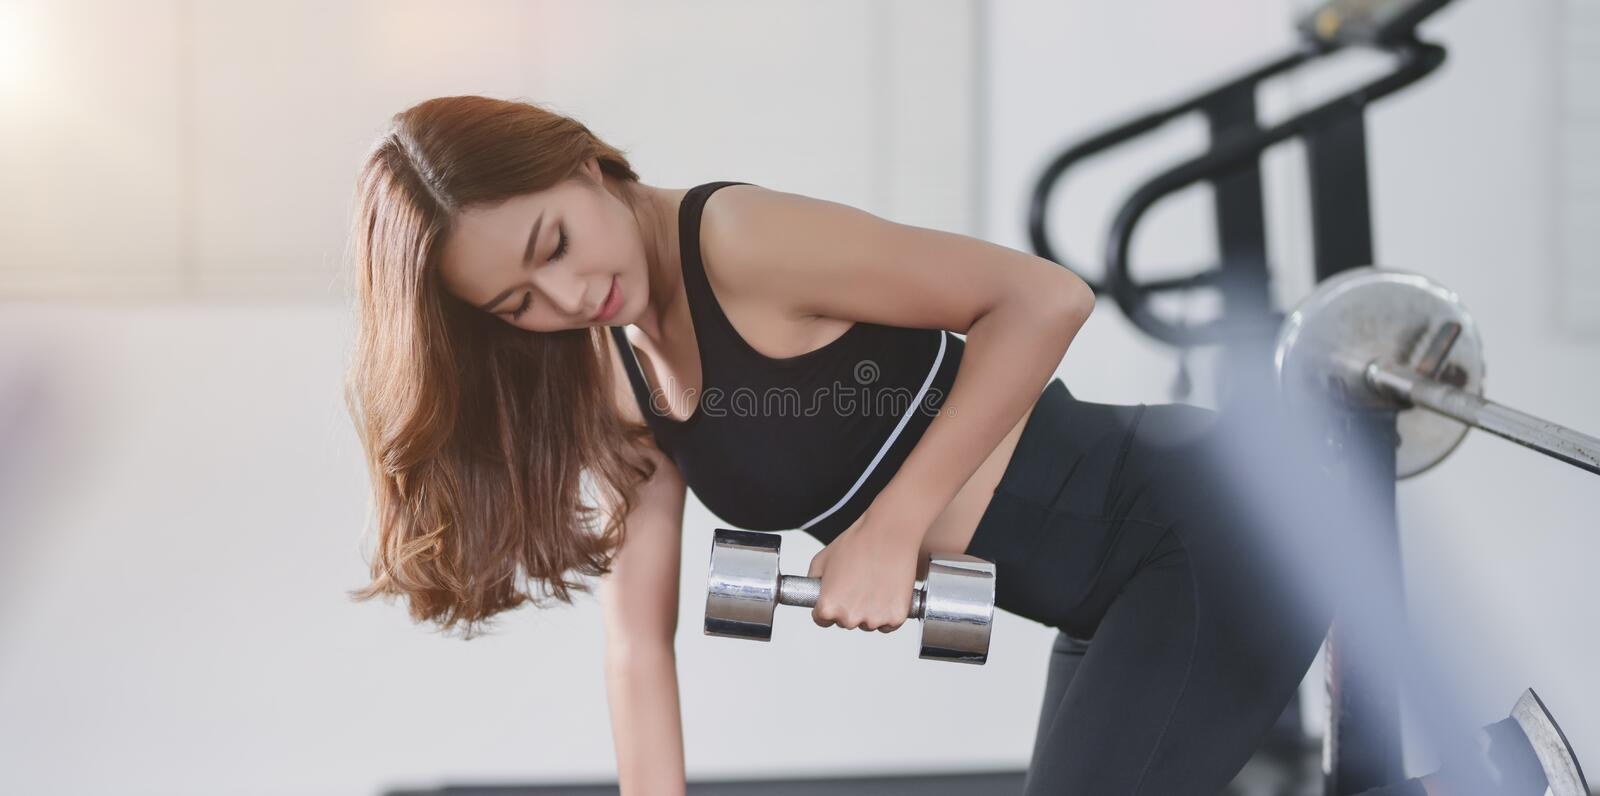 Fit asian athletic woman lifting weights inside home gym royalty free stock image